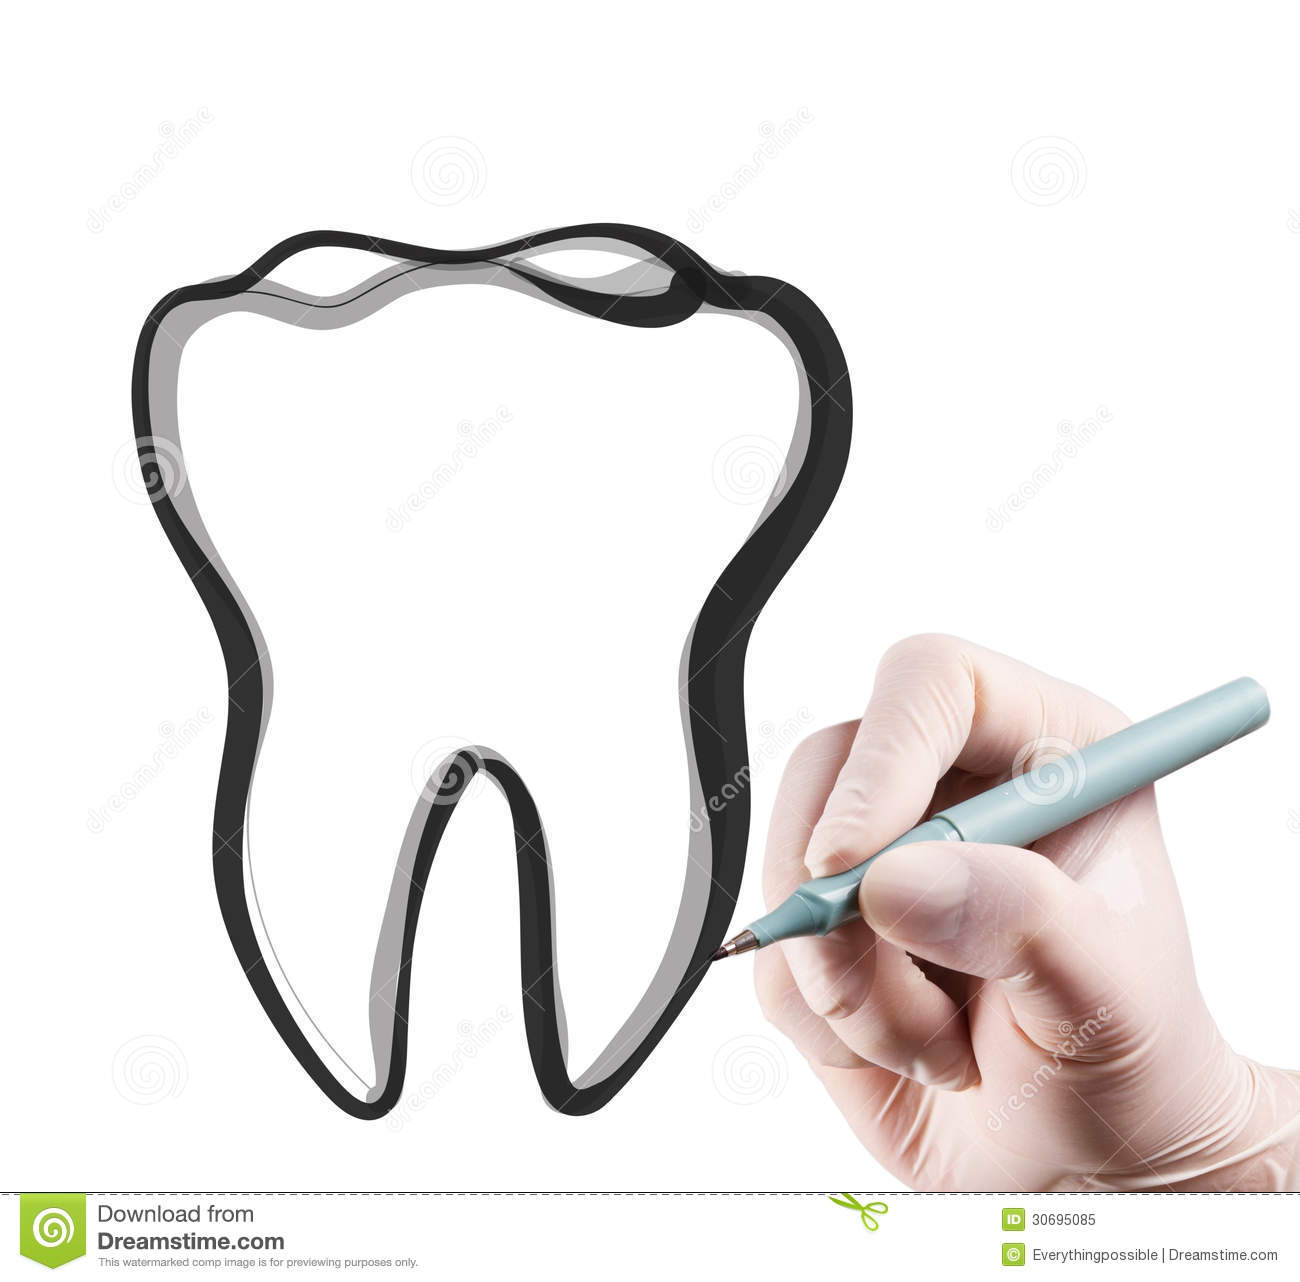 It is an image of Stupendous Drawing Of Teeth